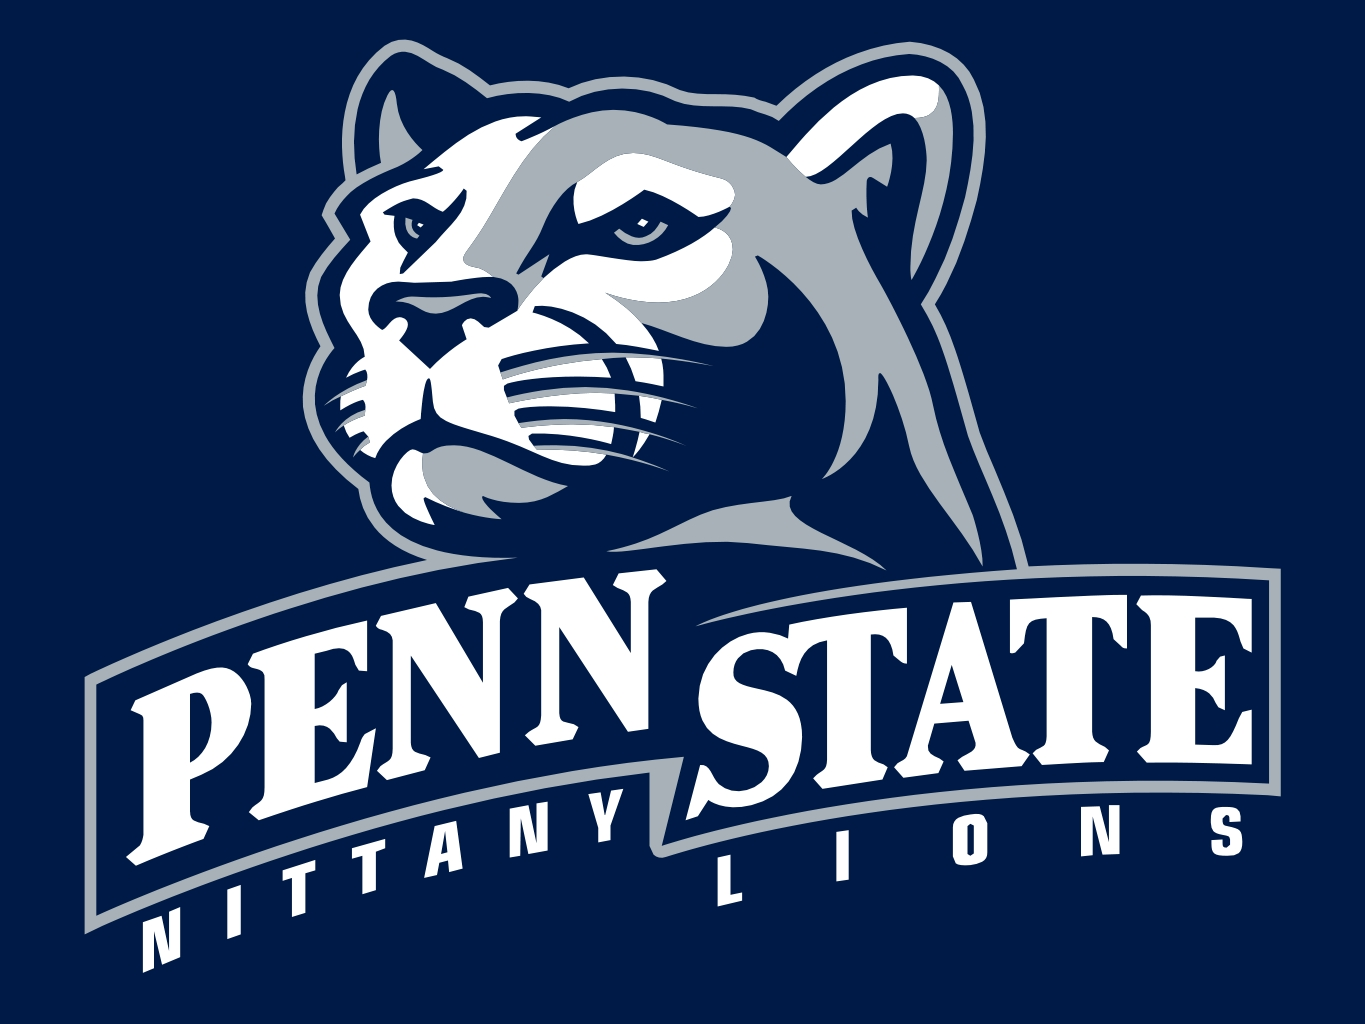 jolly roger sports penn state mixed bag joe paterno penn state logos images penn state logos images